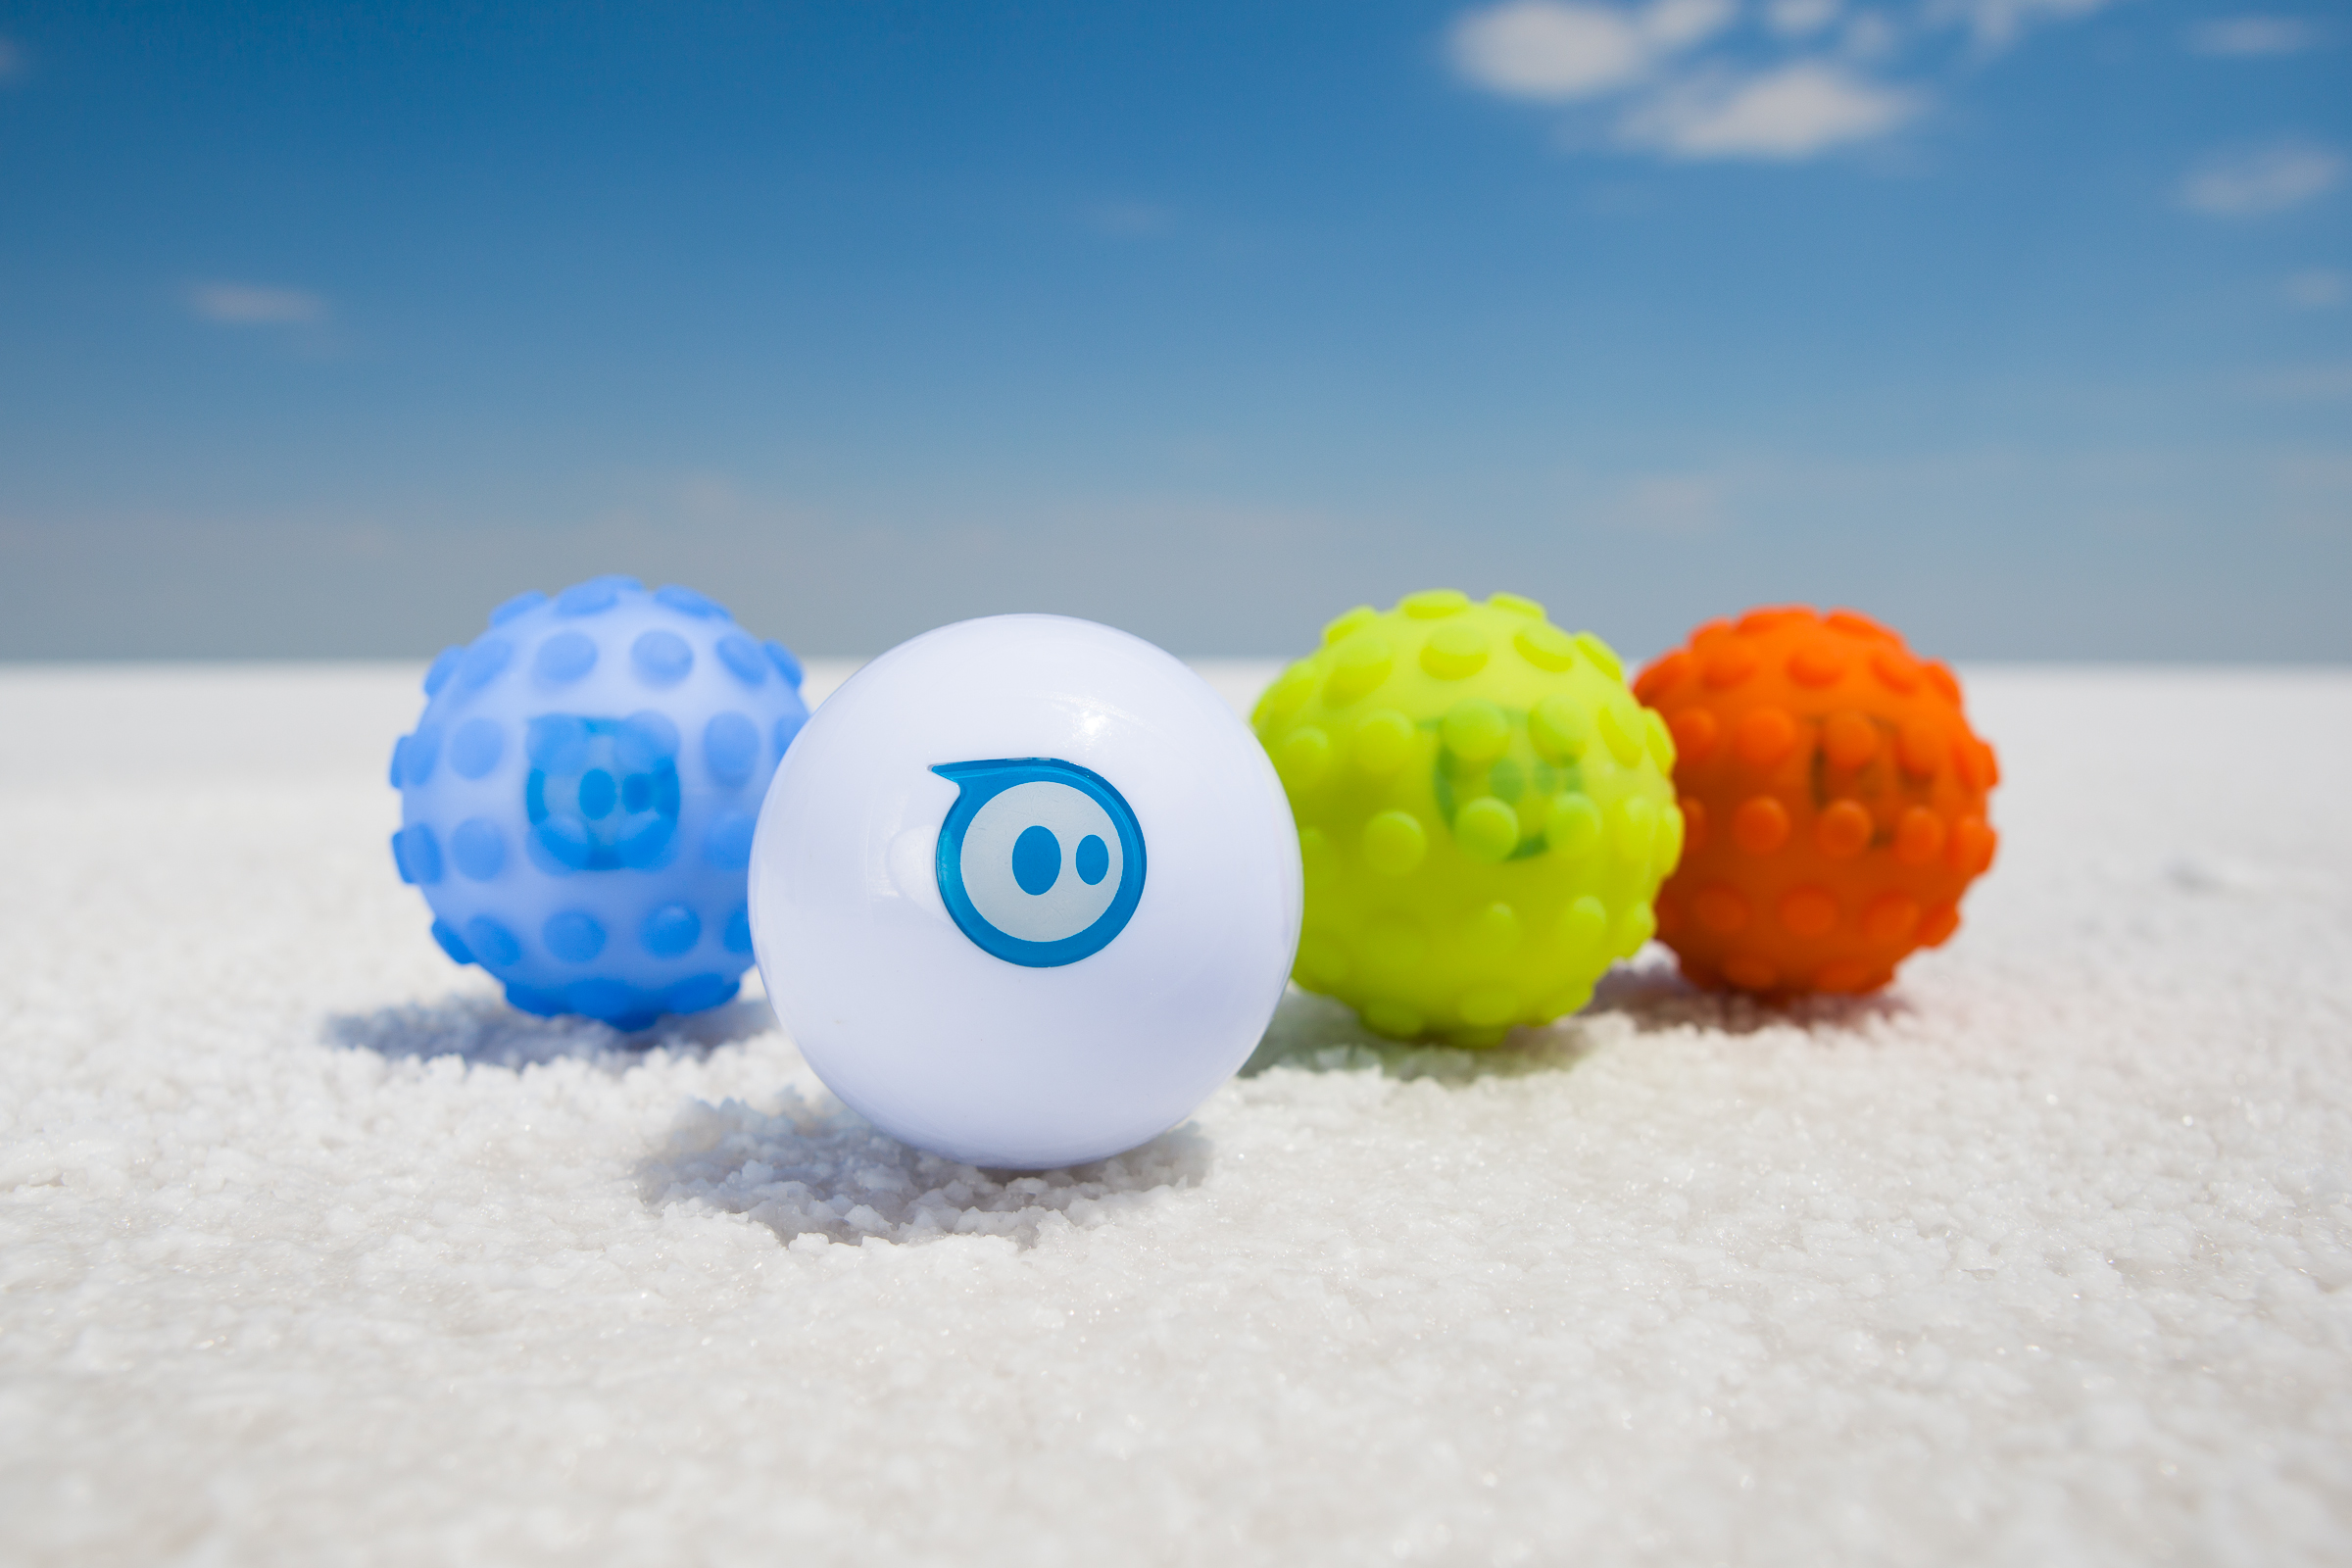 Orbotix Teaches Its Smartphone-Controlled Ball Some New Tricks